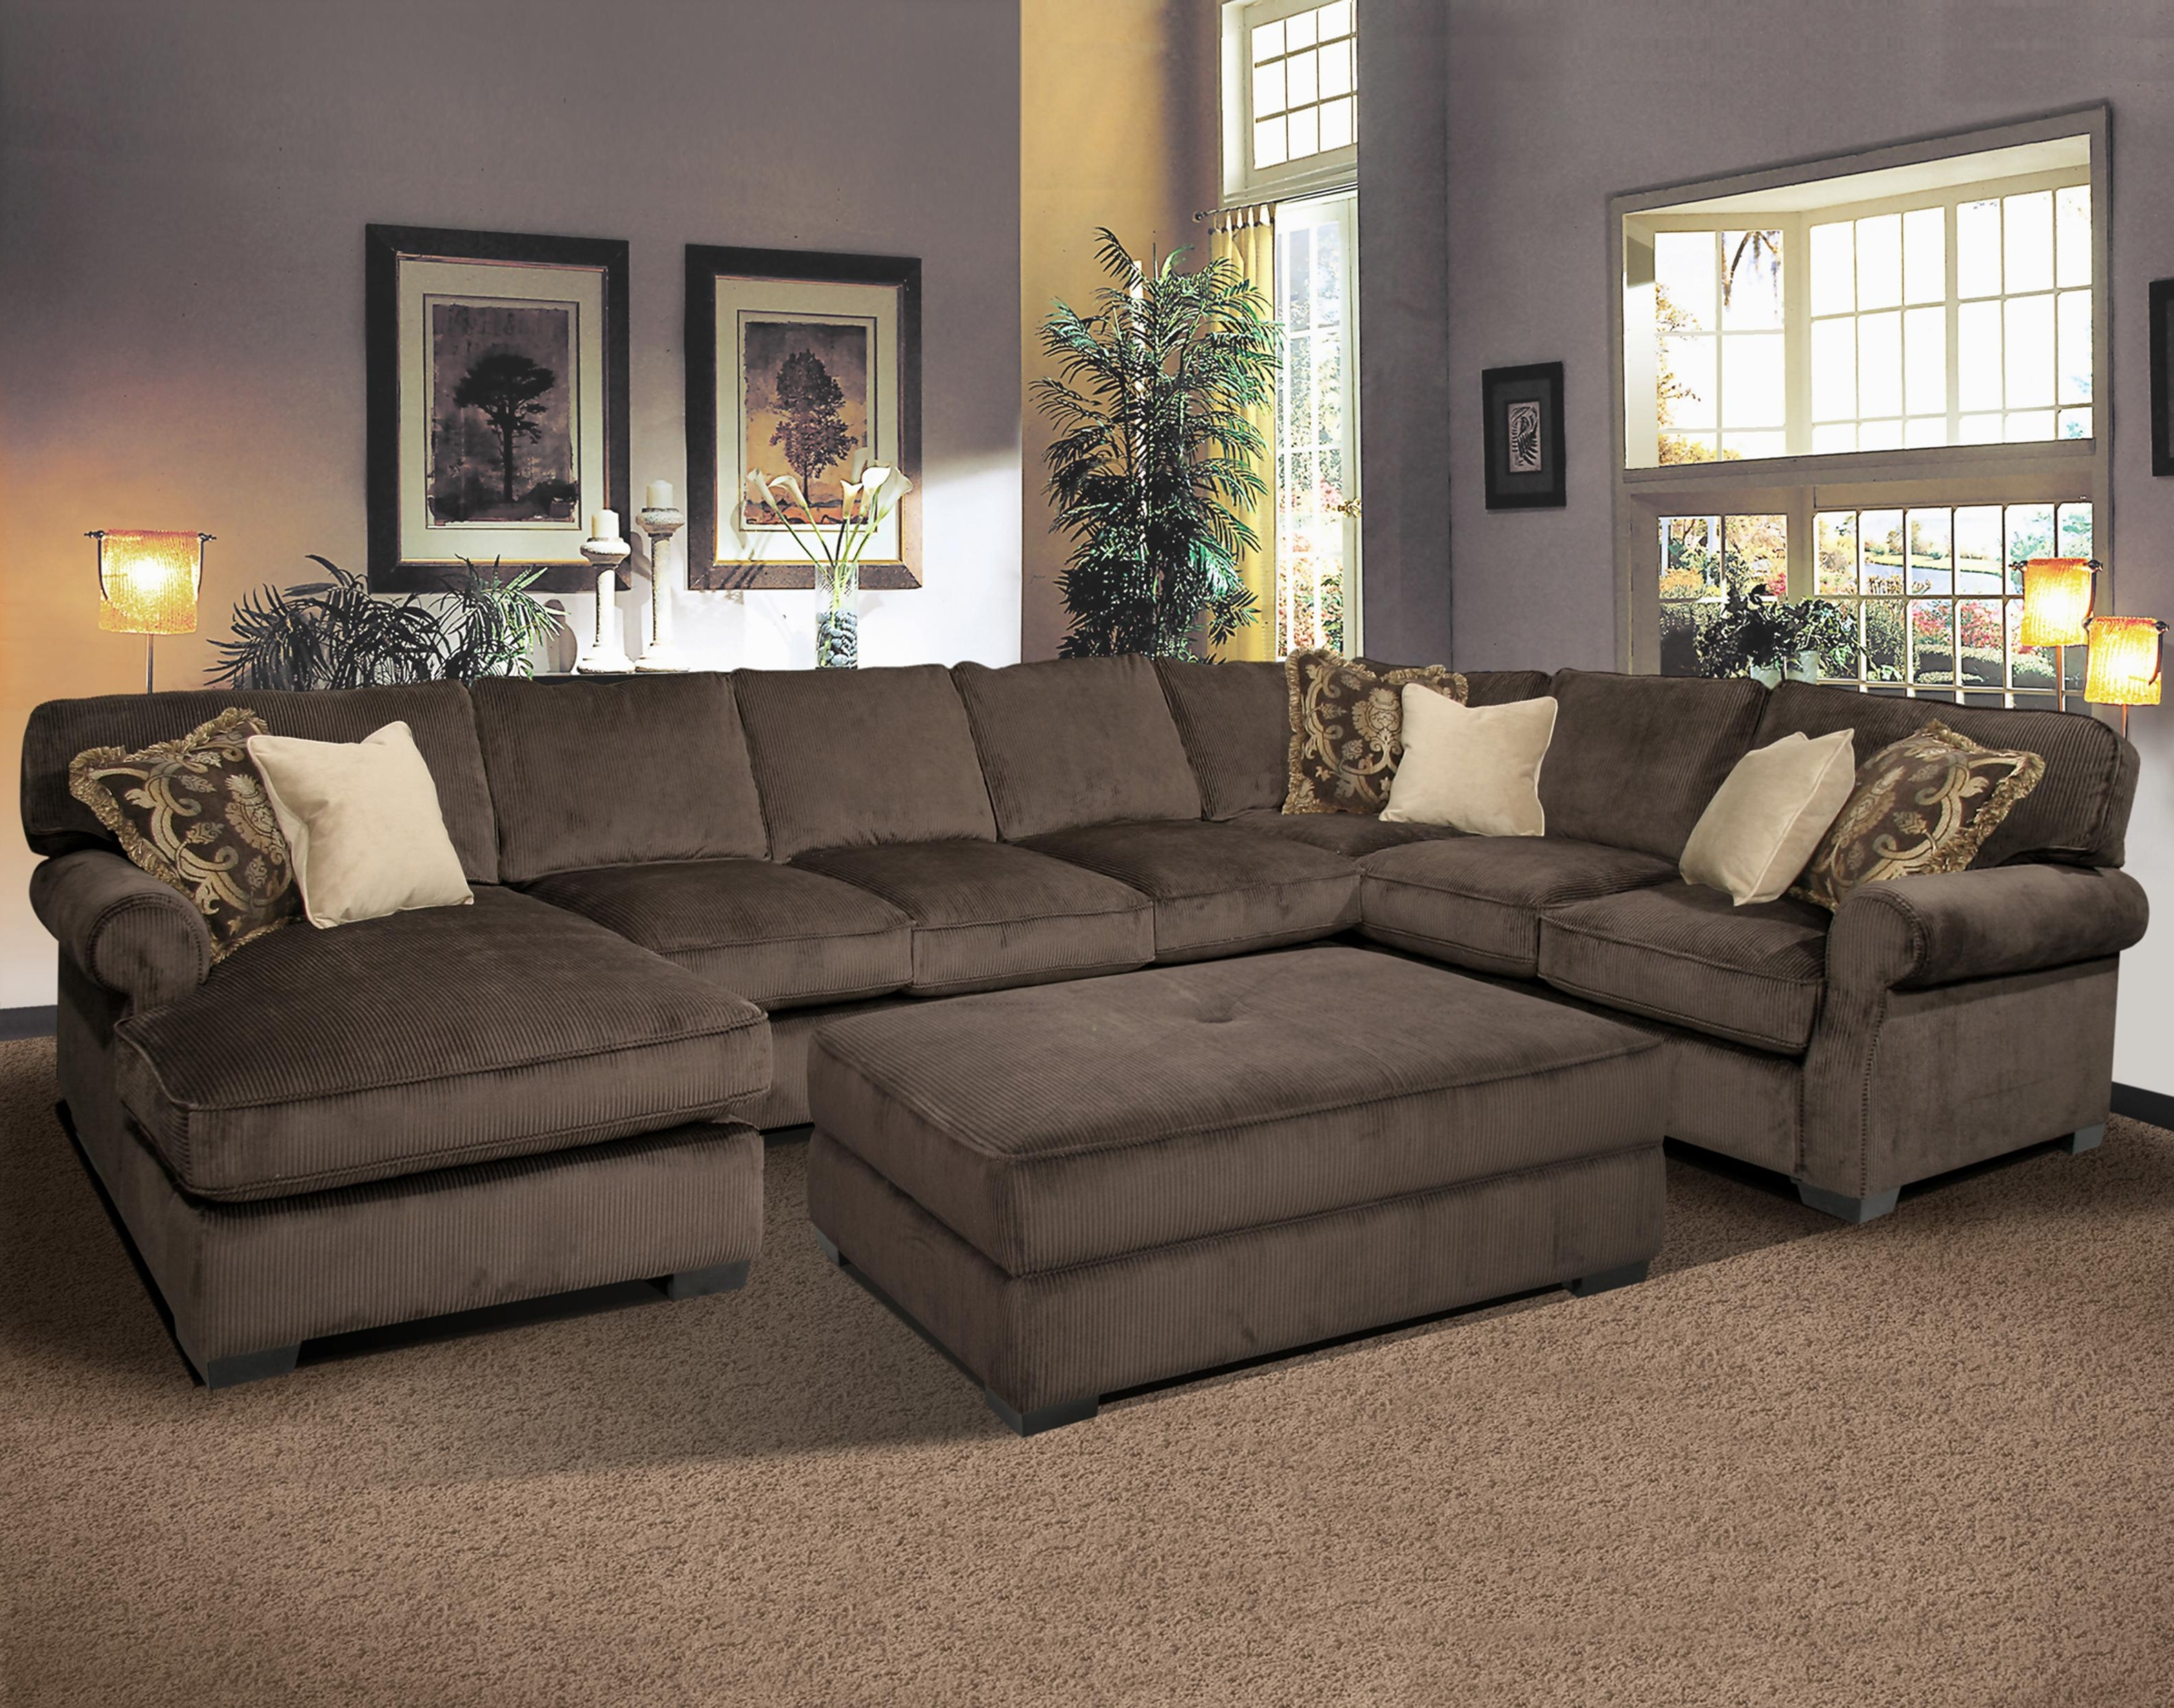 Sectional Couch With Recliner Ikea Couch Bed Large Leather With 2018 Big U Shaped Couches (View 14 of 20)